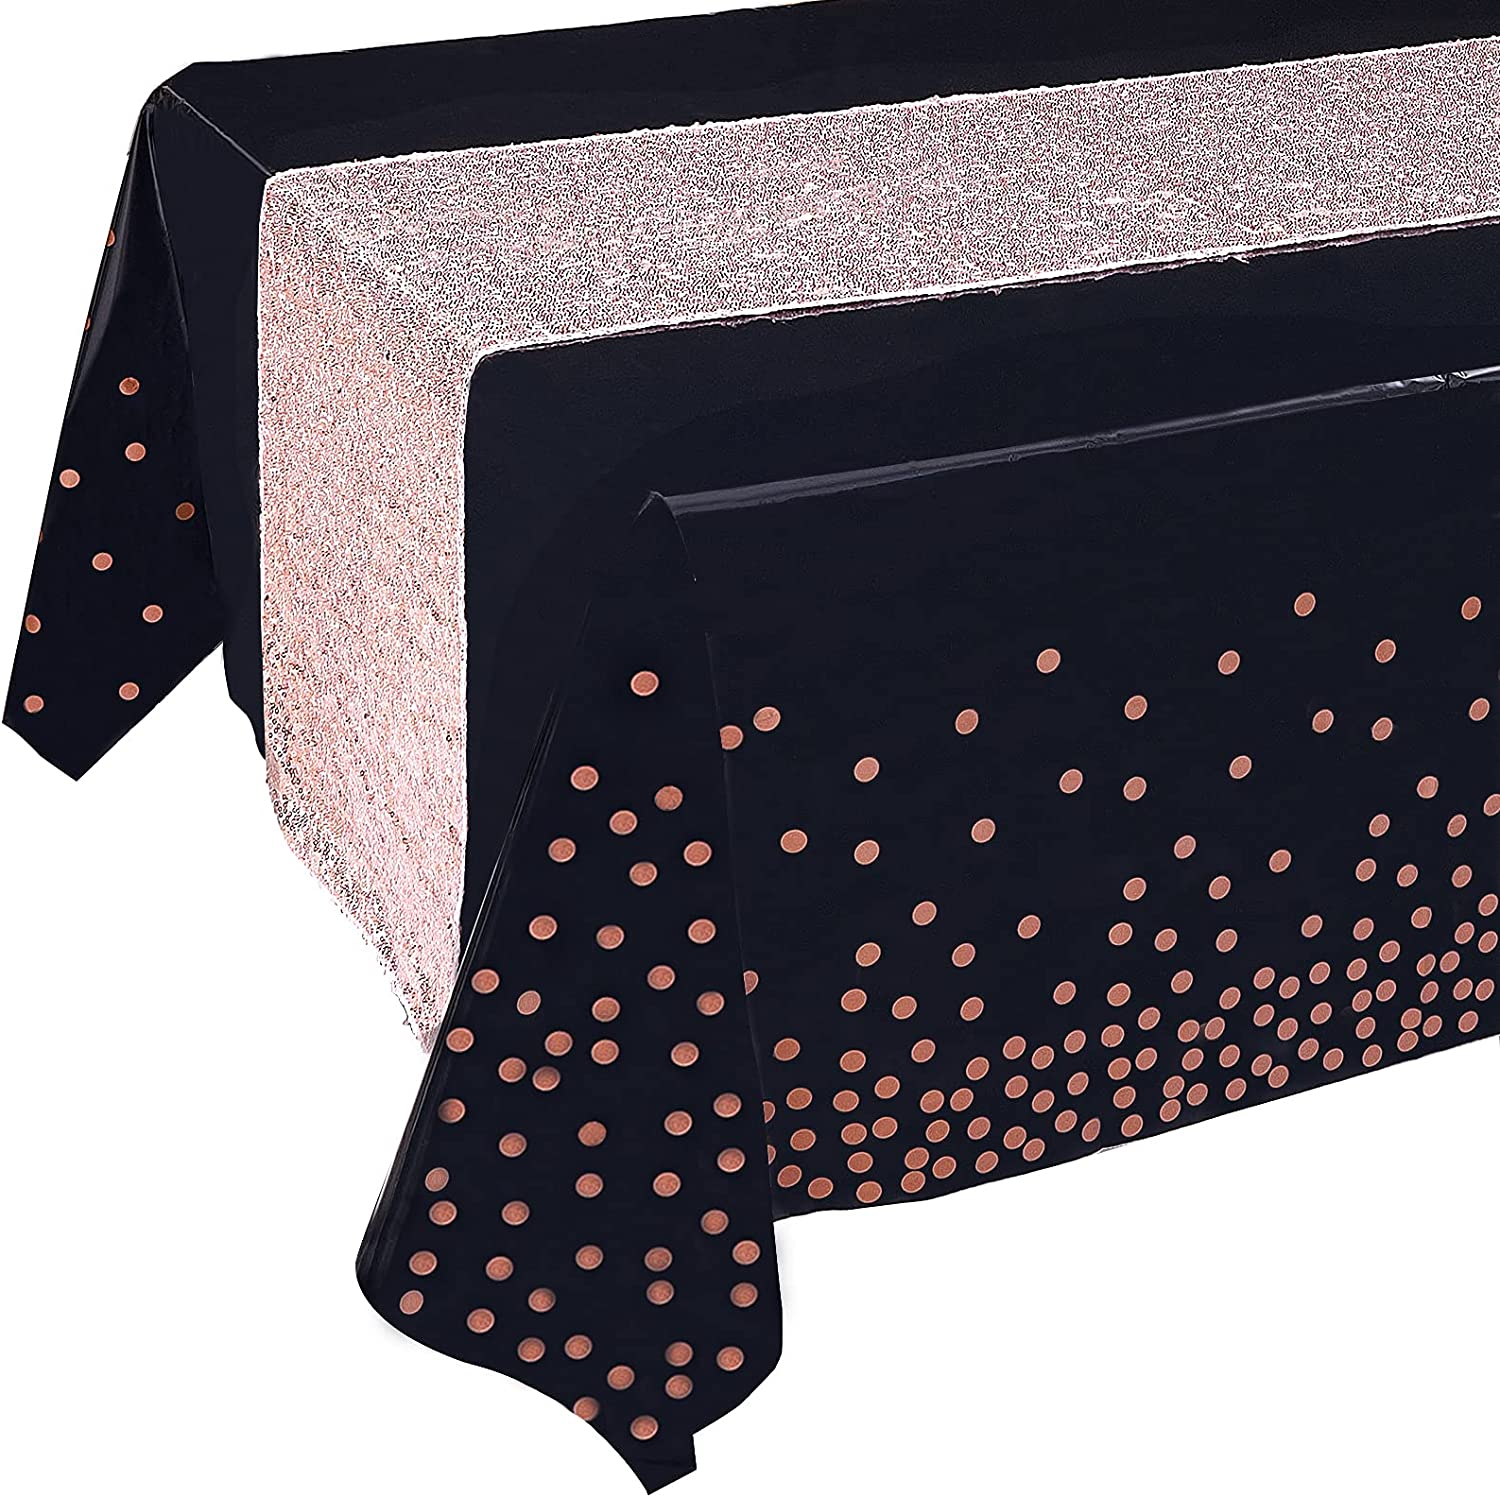 Rose Gold Tablecloth Sequin Table Runner Set, Black and Rose Gold Party Decorations, Rectangle Disposable Plastic Table Cloths for Parties, Rose Gold Table Runners, for Graduation Birthday Anniversary